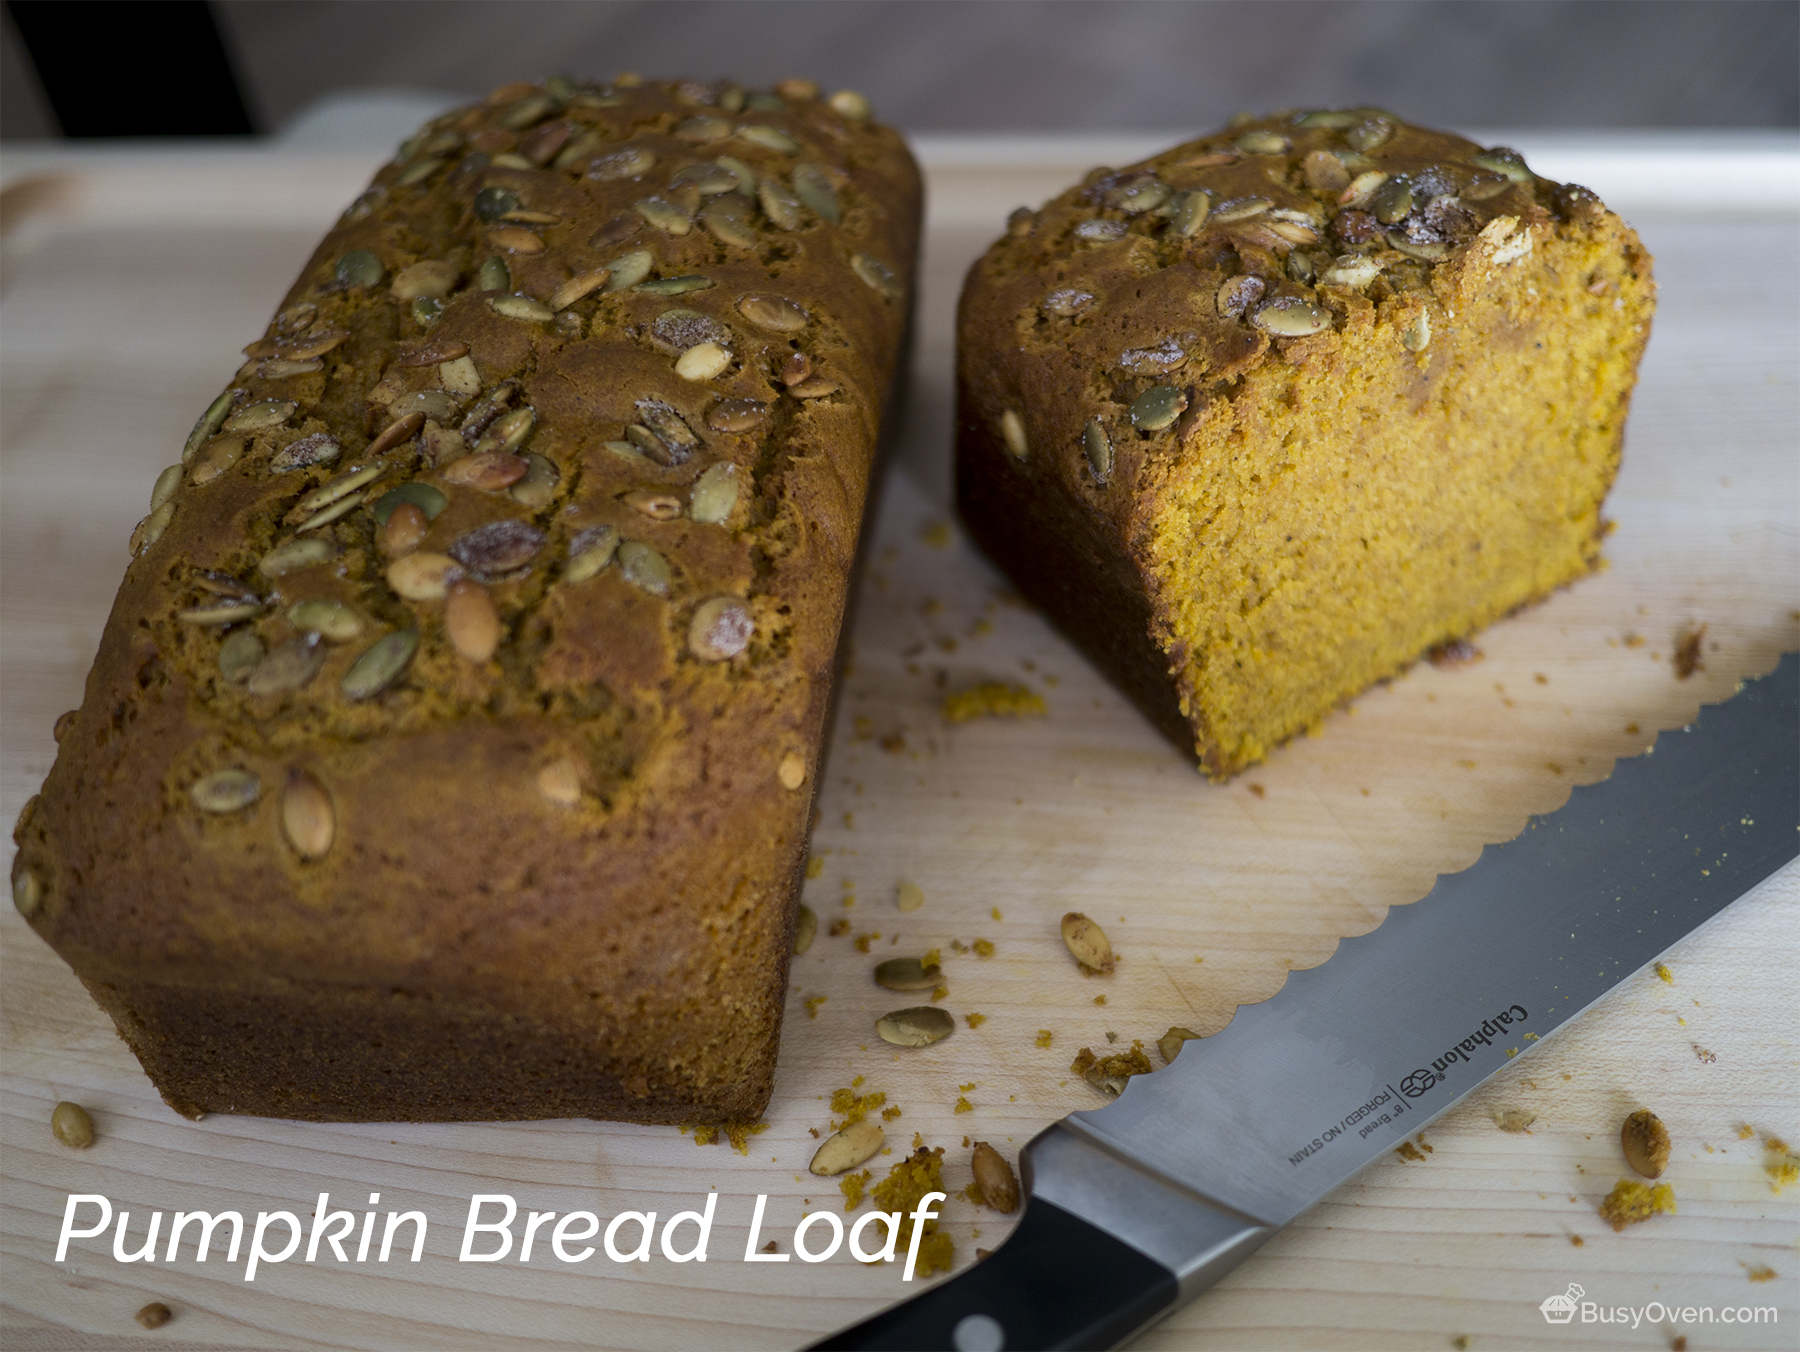 Pumpkin Bread Loaf